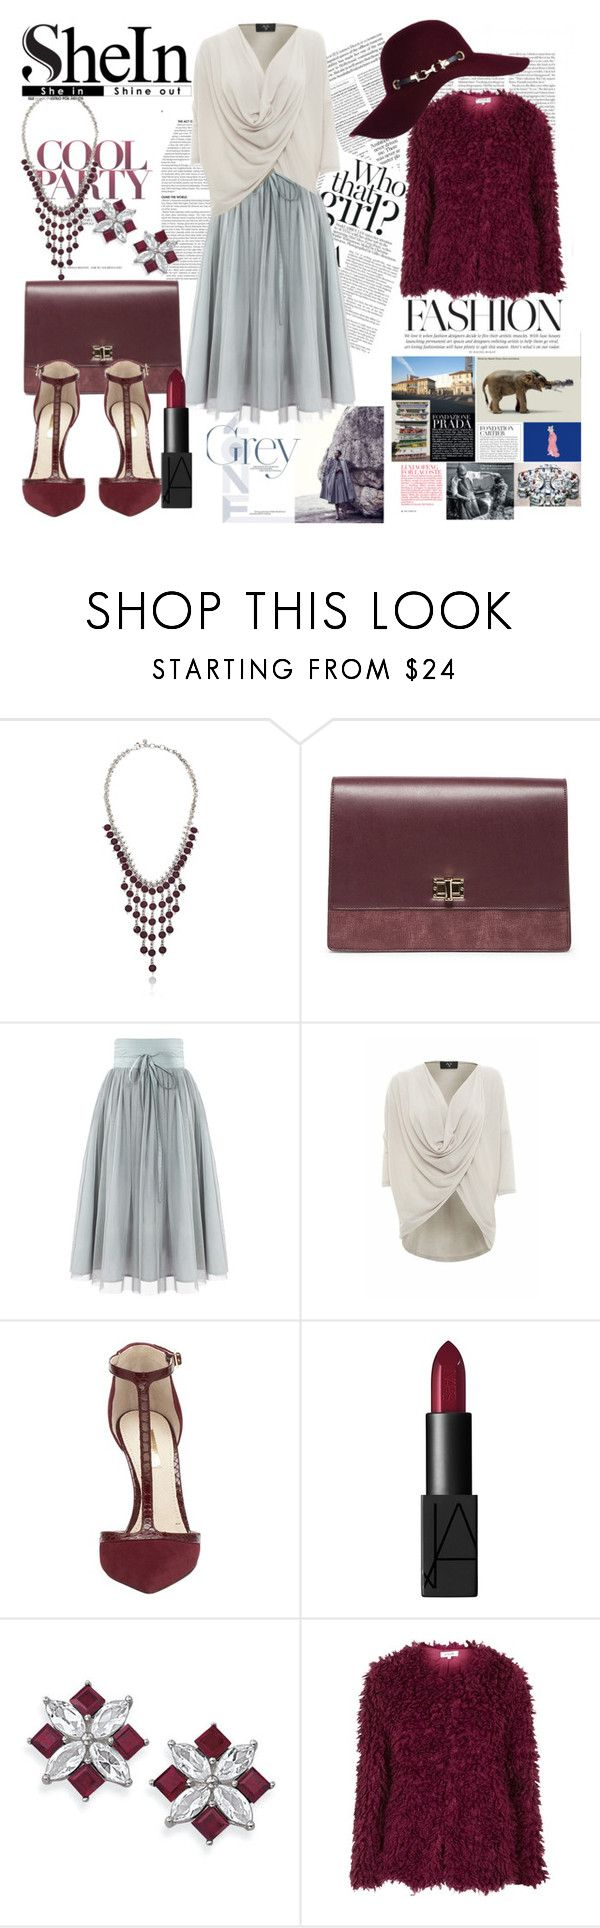 Untitled #174 by denisa-marcu on Polyvore featuring AX Paris, Topshop, Louise et Cie, Sole Society, Lucky Brand, Natures Jewelry, River Island, NARS Cosmetics and paris